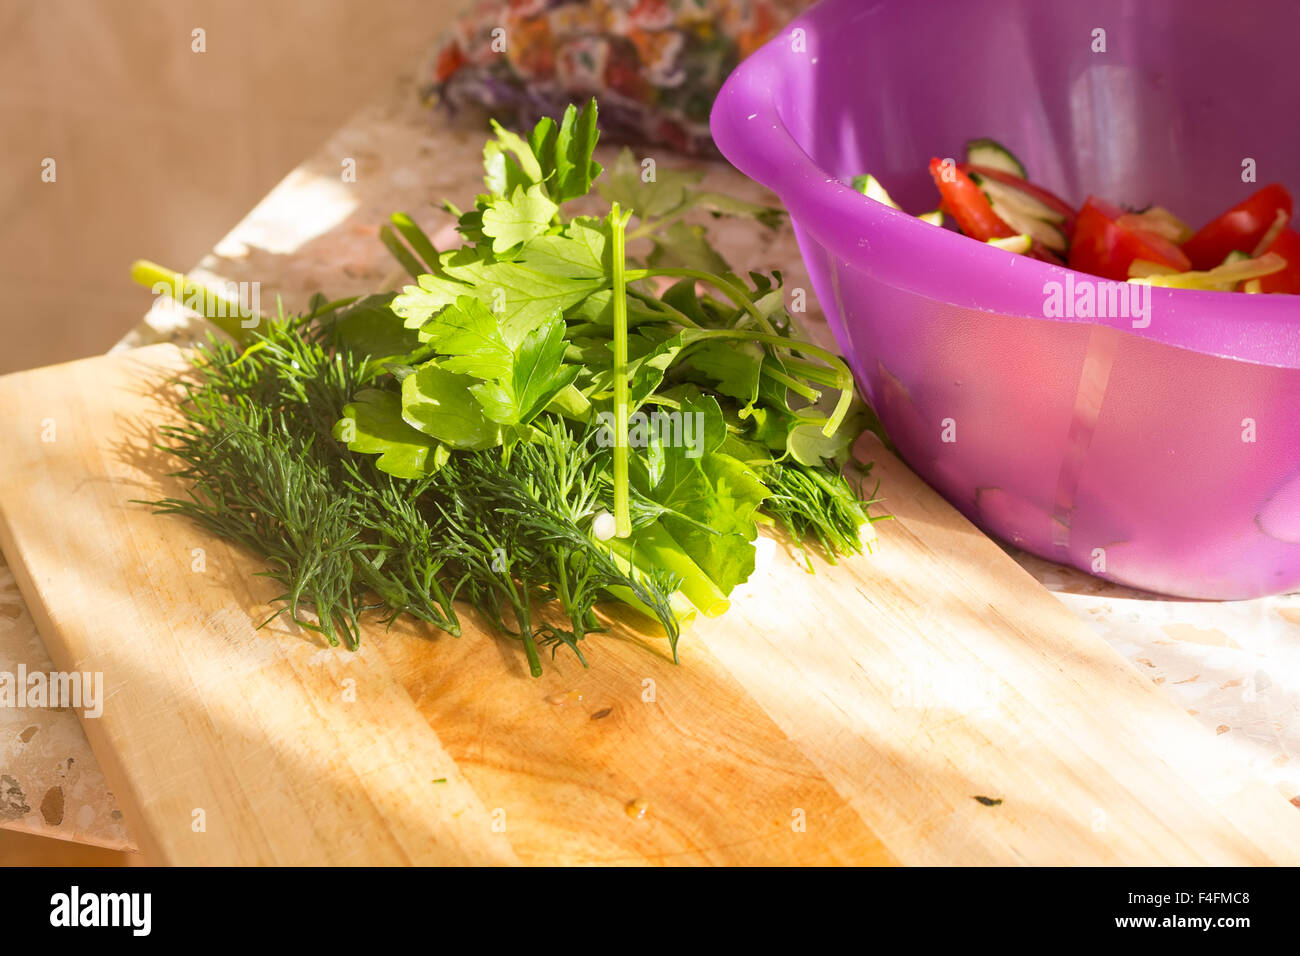 Parsley And Dill On Wooden Cutting Board Preparation Of Vegetable